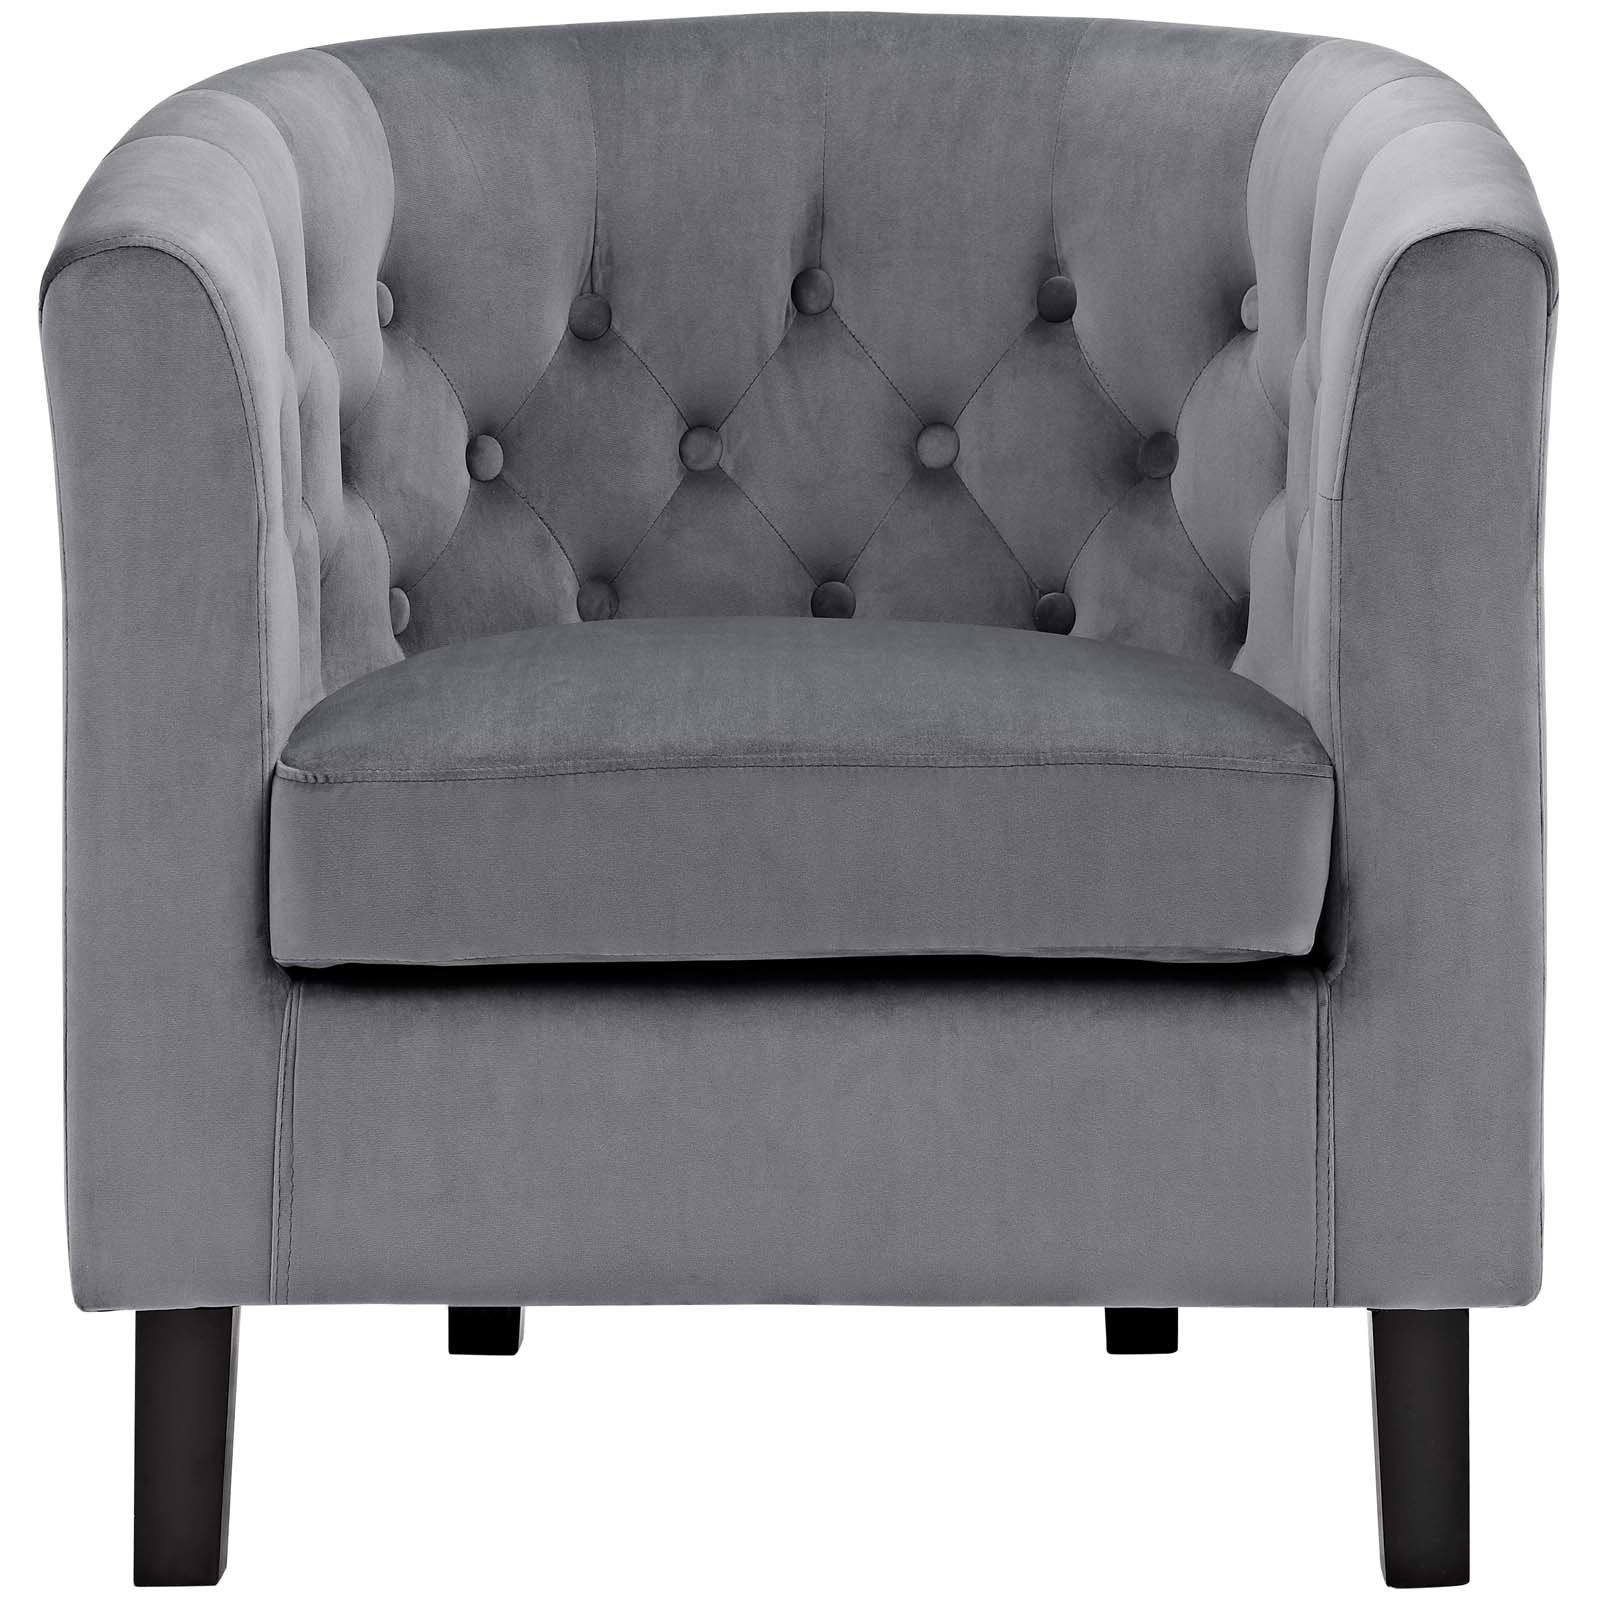 Barrel Chair, Furniture, Chair Upholstery (View 7 of 20)